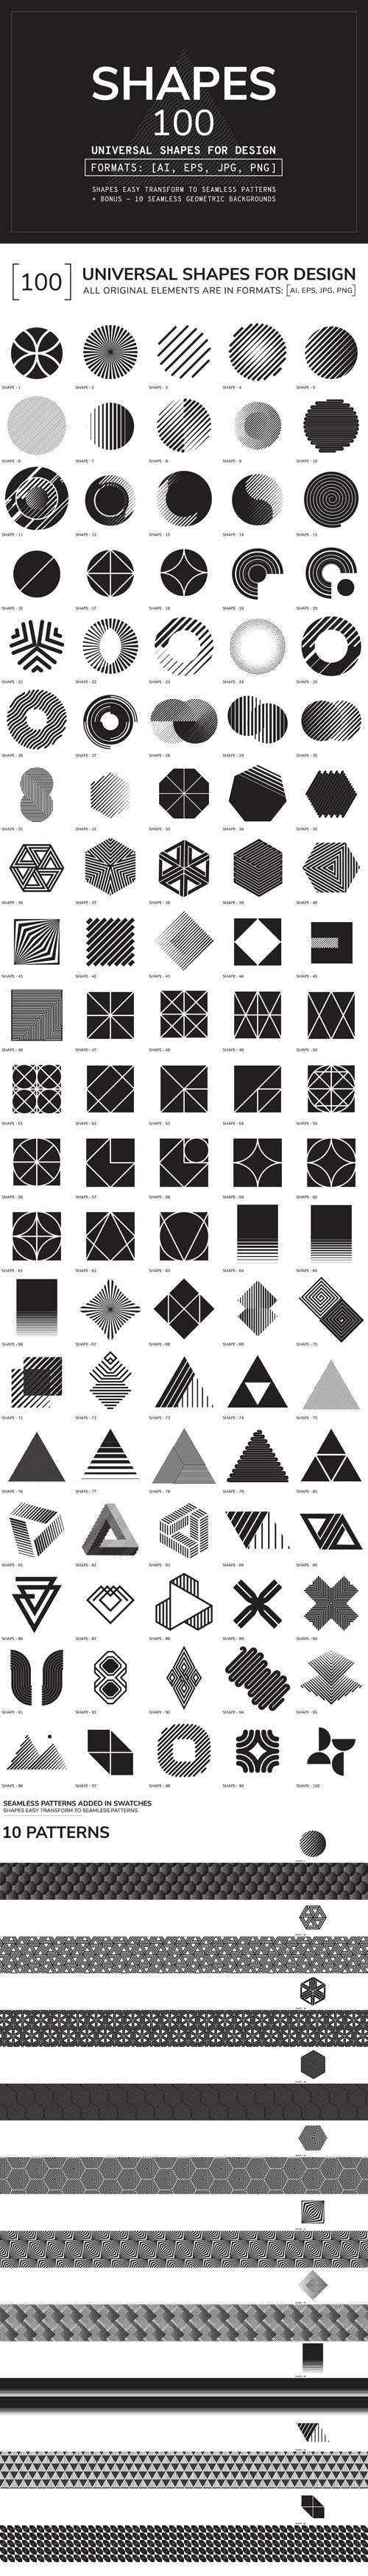 CM - 100 Geometric Shapes - Part 2